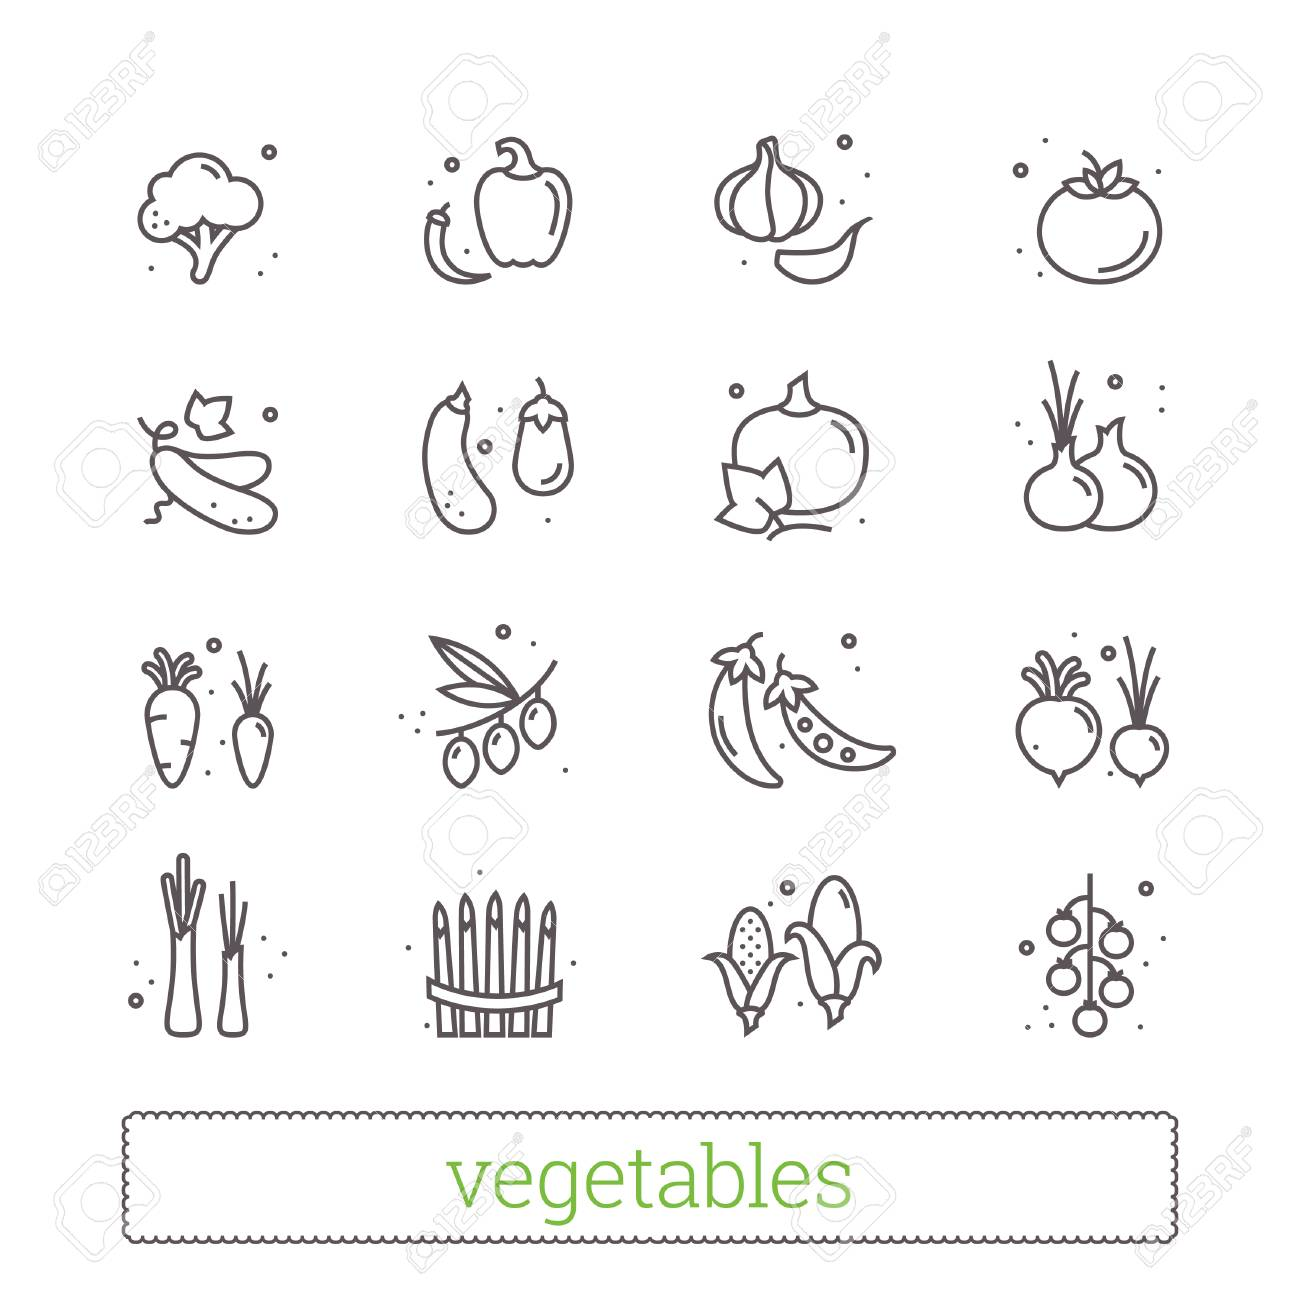 Vegetables Thin Line Icons Modern Linear Design Elements And